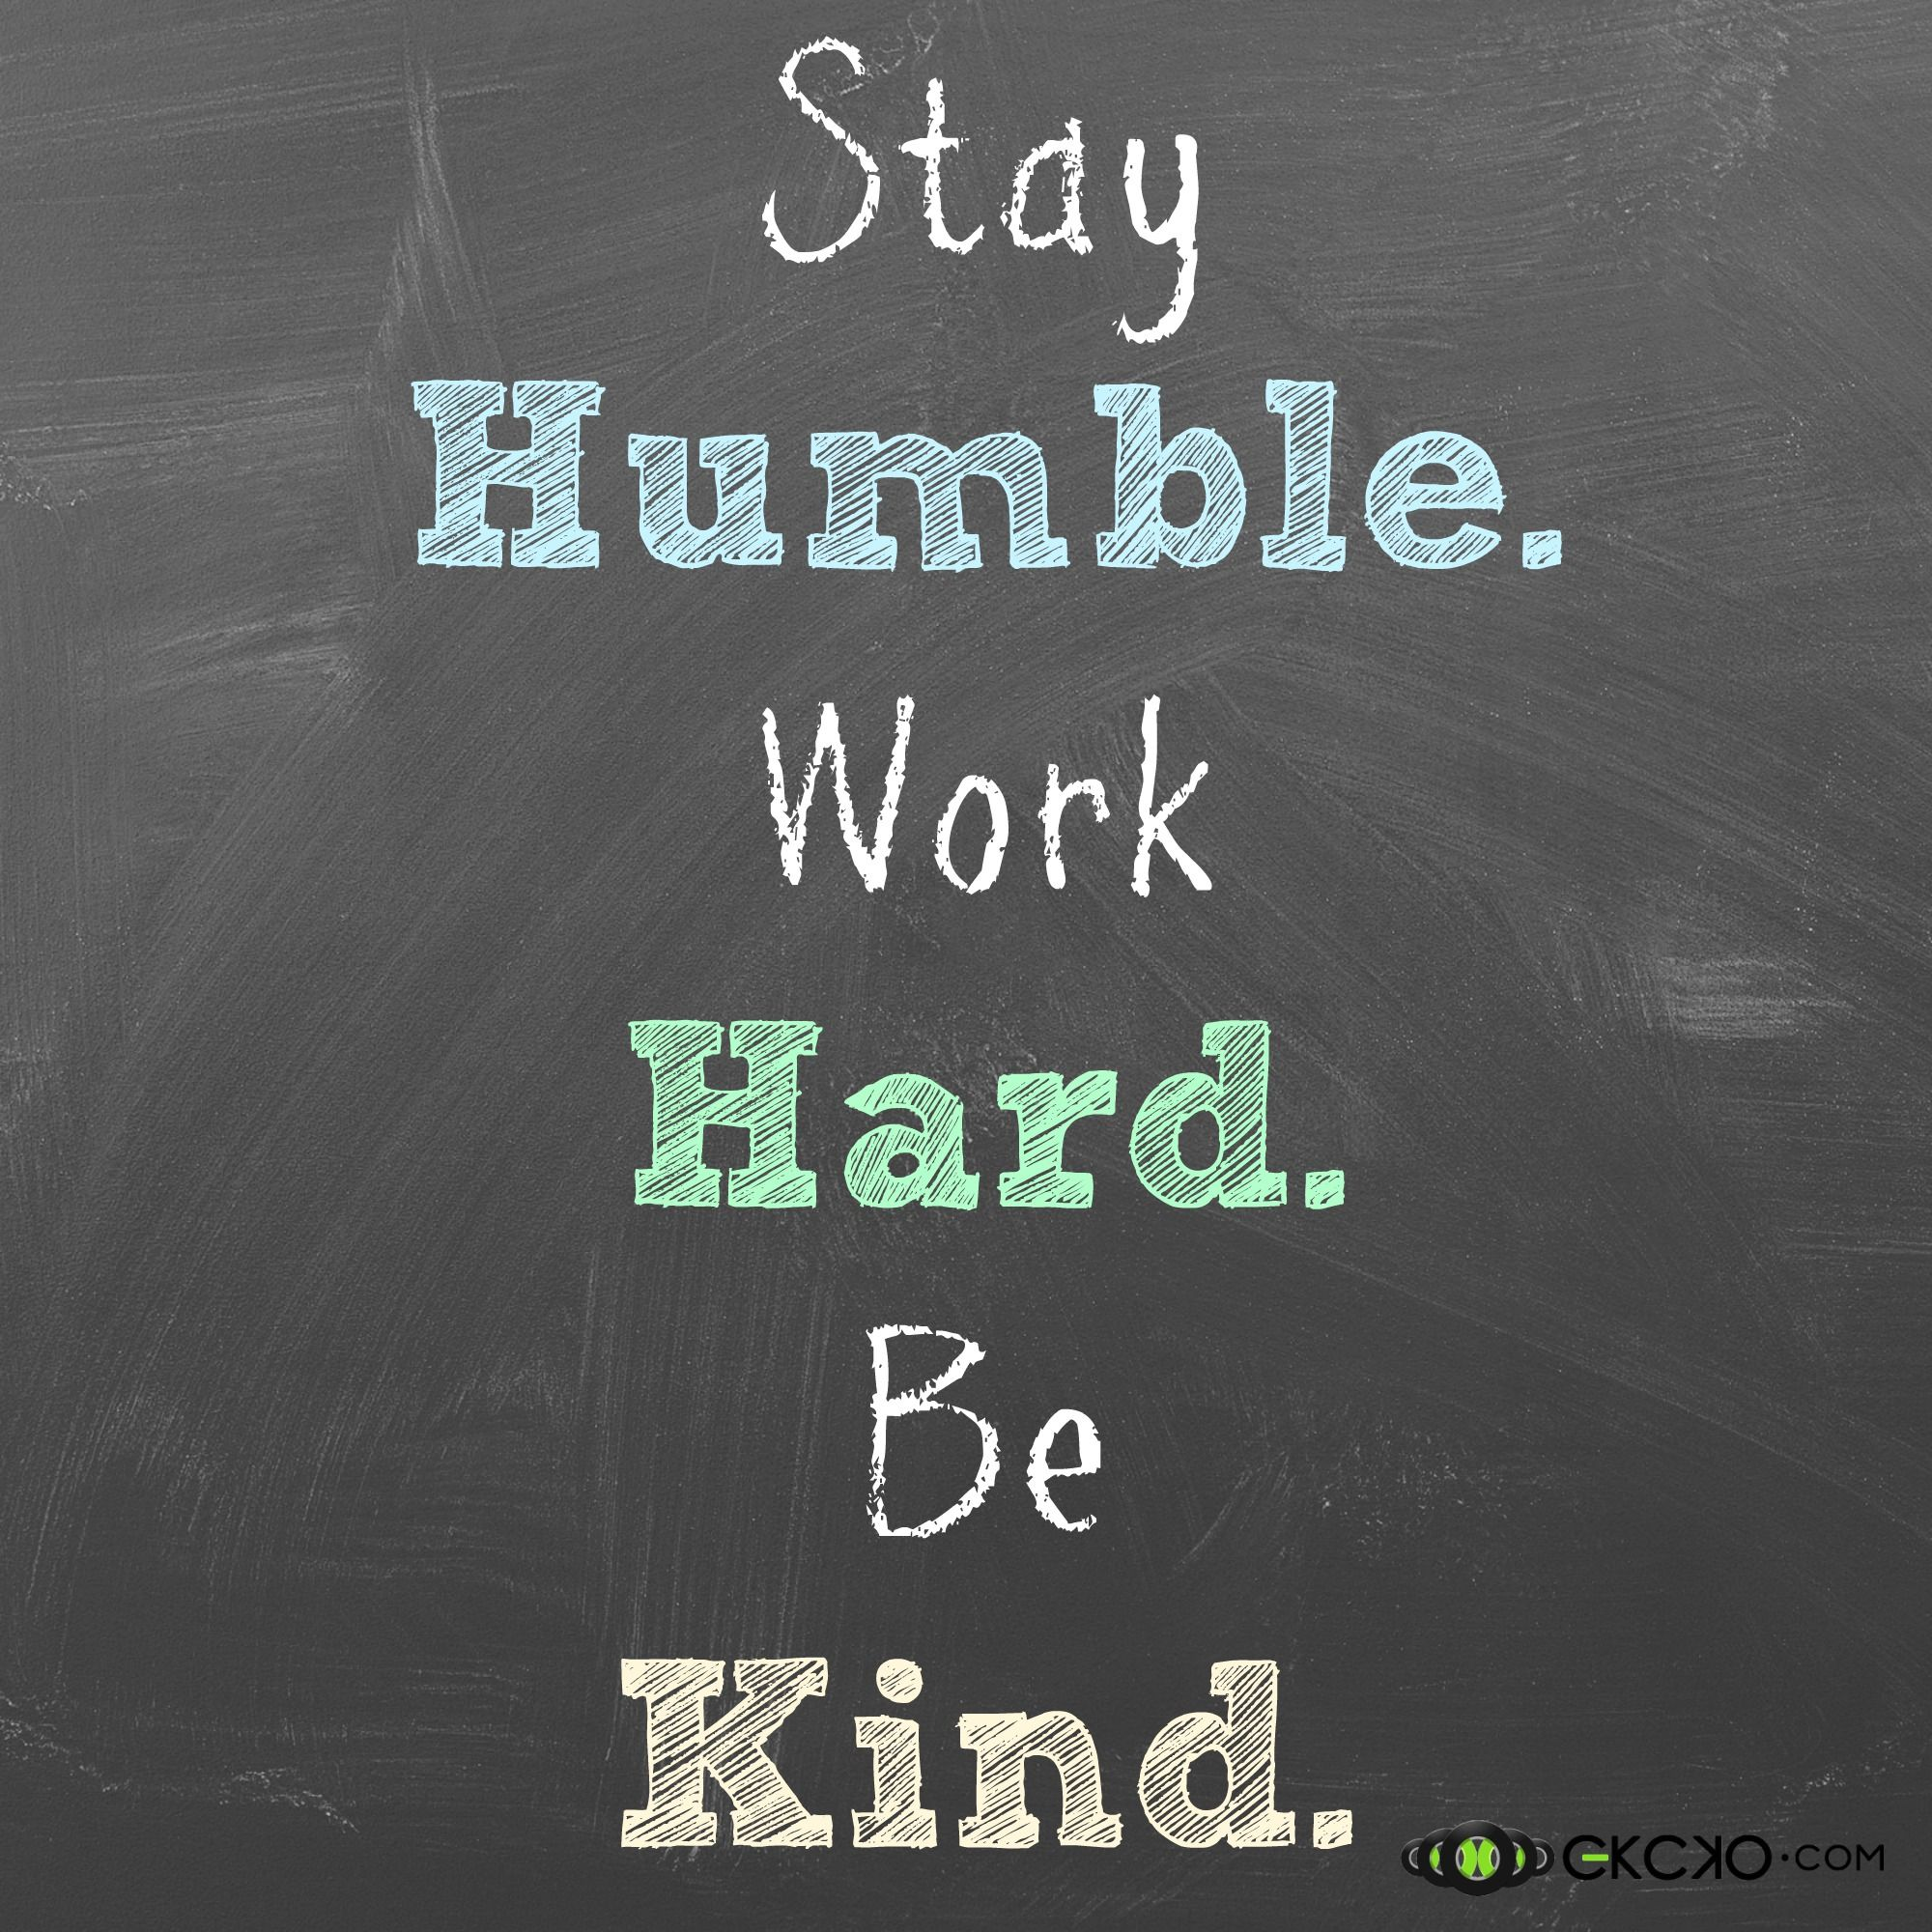 Inspirational Quotes About Failure: Stay Humble… #EKCKO #Quote